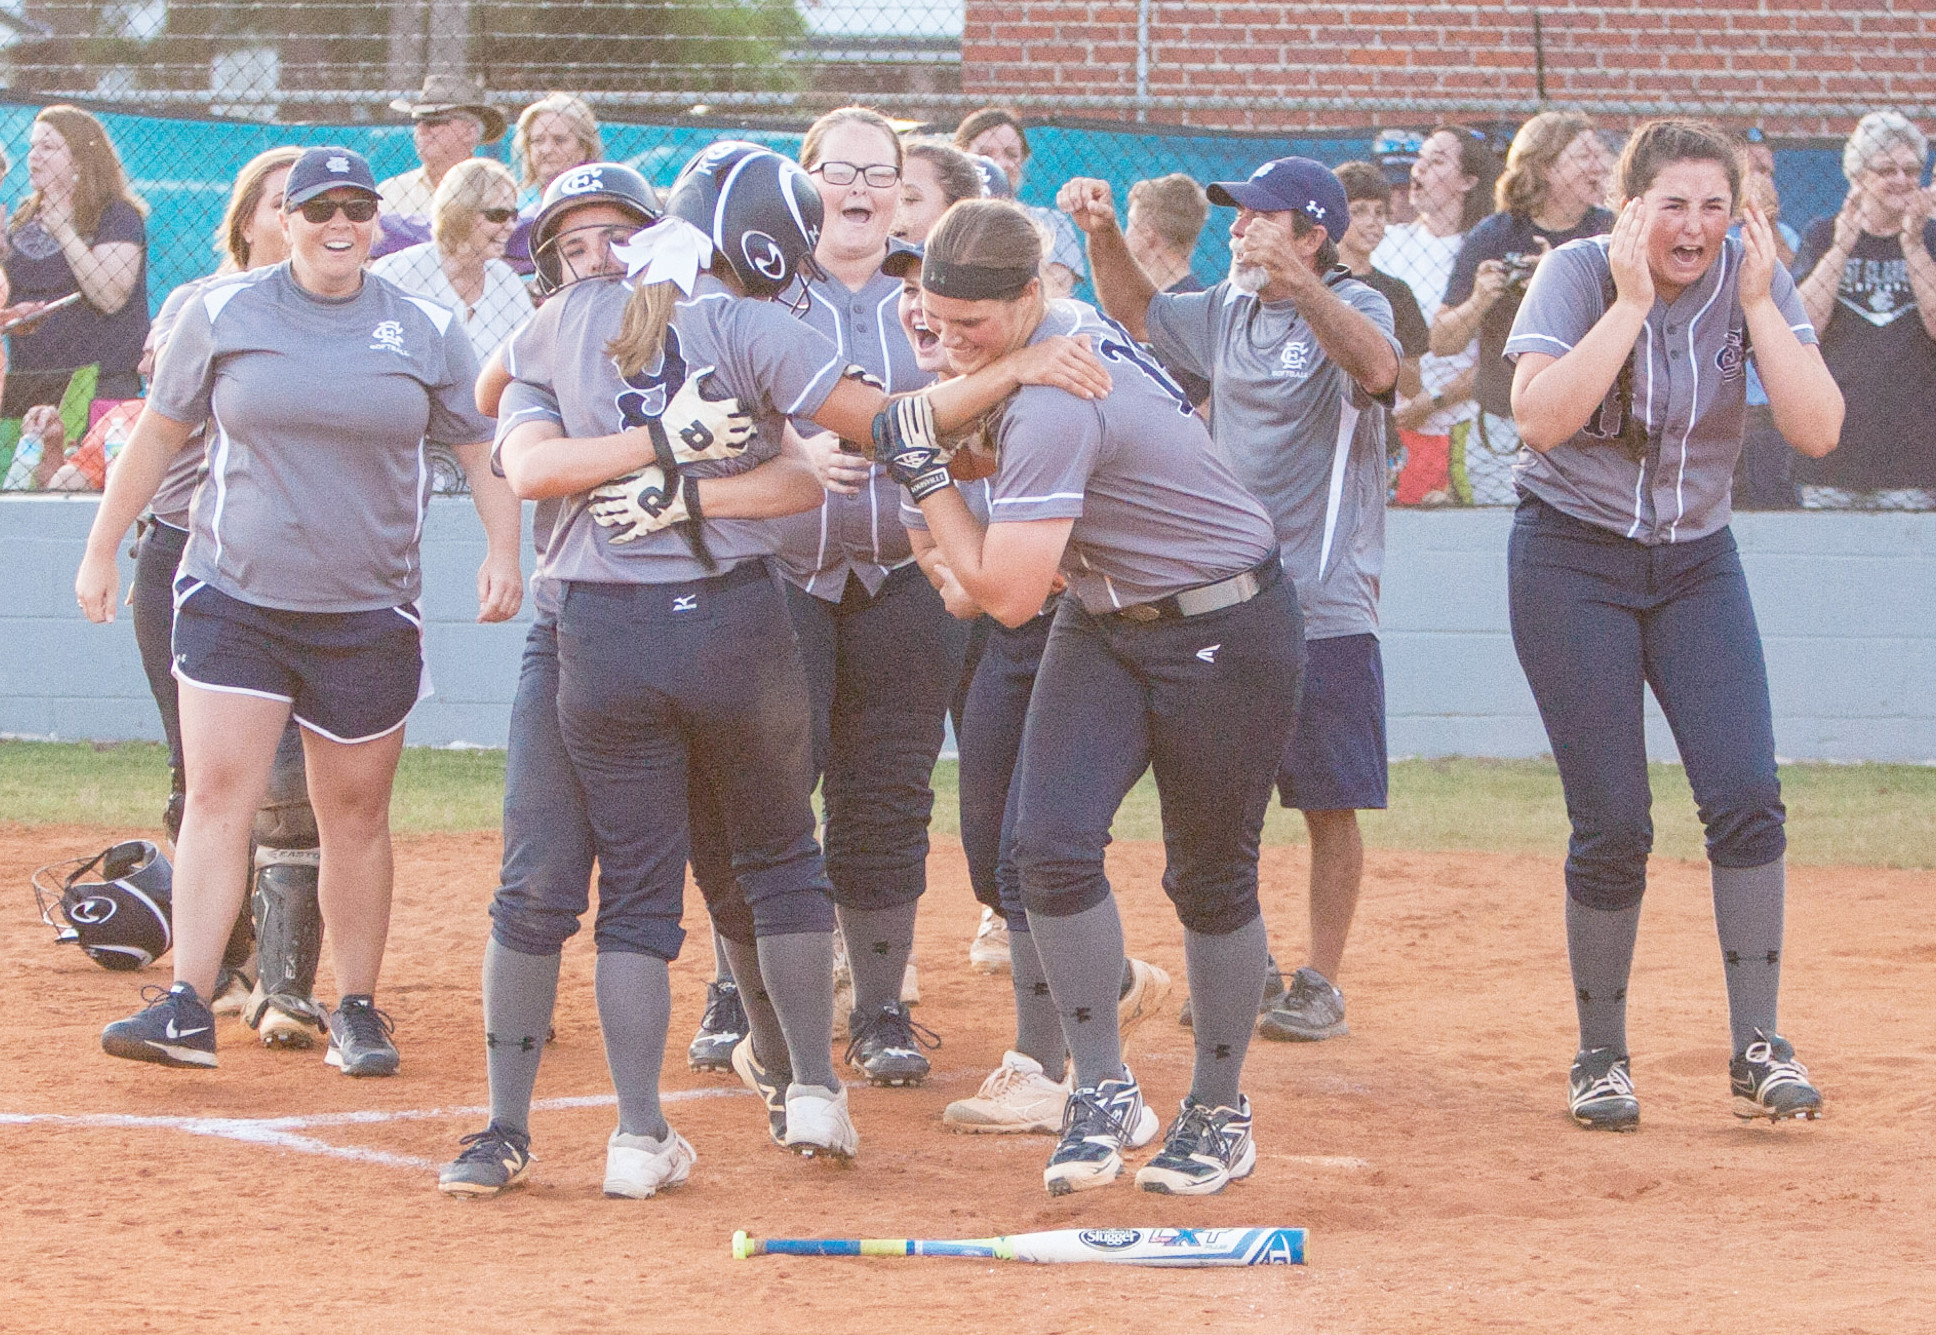 Members of the East Clarendon High School softball team celebrate winning the 1A state championship on Wednesday at the ECHS field in Turbeville after the Lady Wolverines rallied for two runs in the bottom of the seventh inning in a 4-3 victory over Dixie.